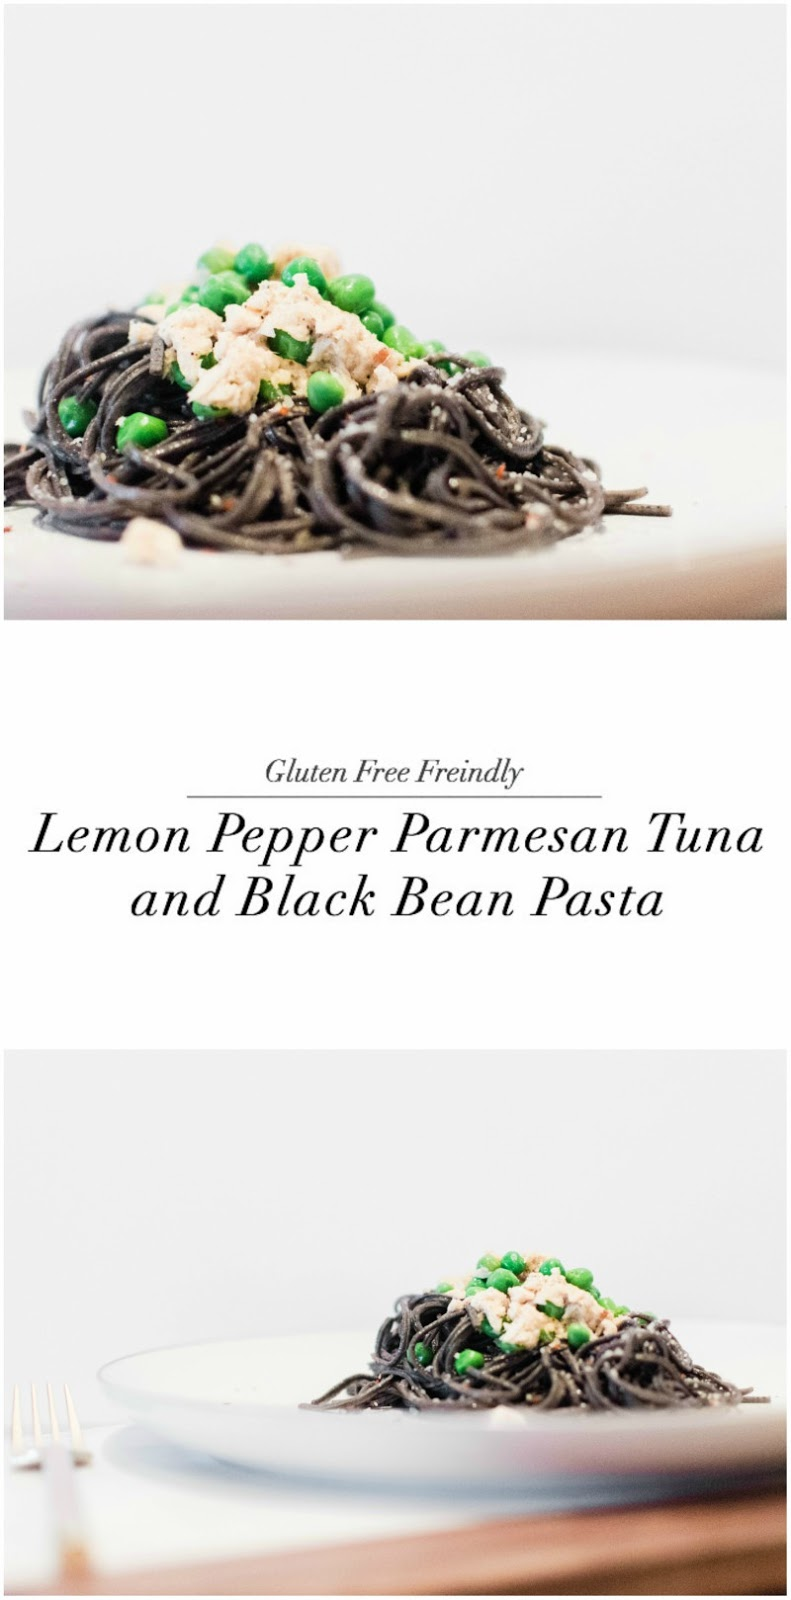 Lemon-Parmesan-Tuna-Black-Bean-Pasta-recipe